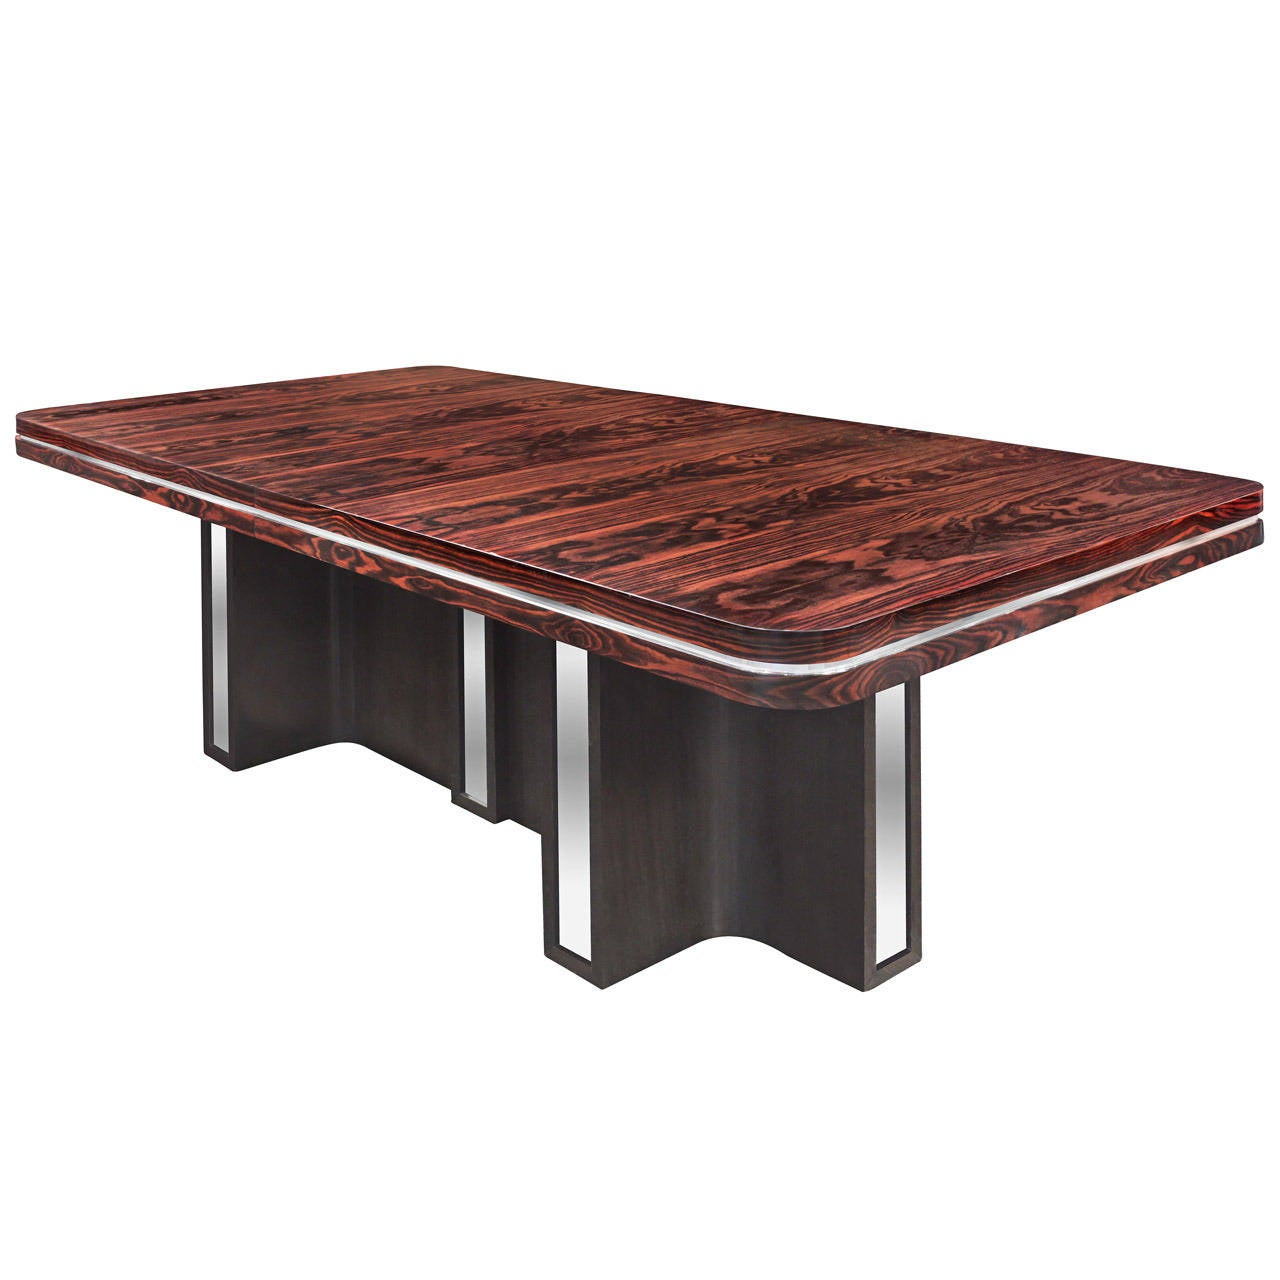 Macassar ebony dining table lingerie free pictures - Free dining tables ...